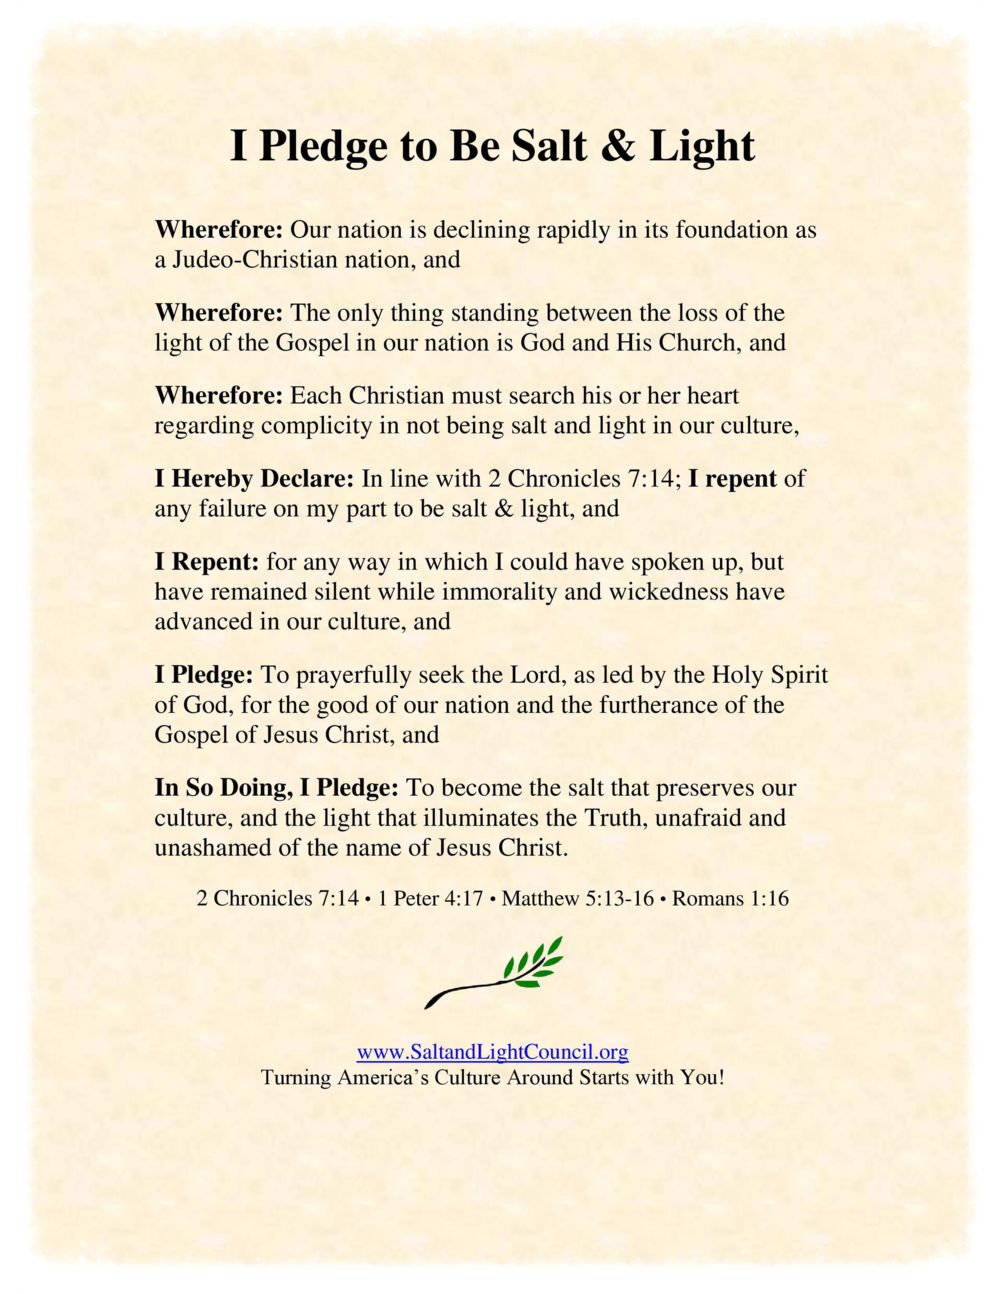 The Pledge to be Salt & Light